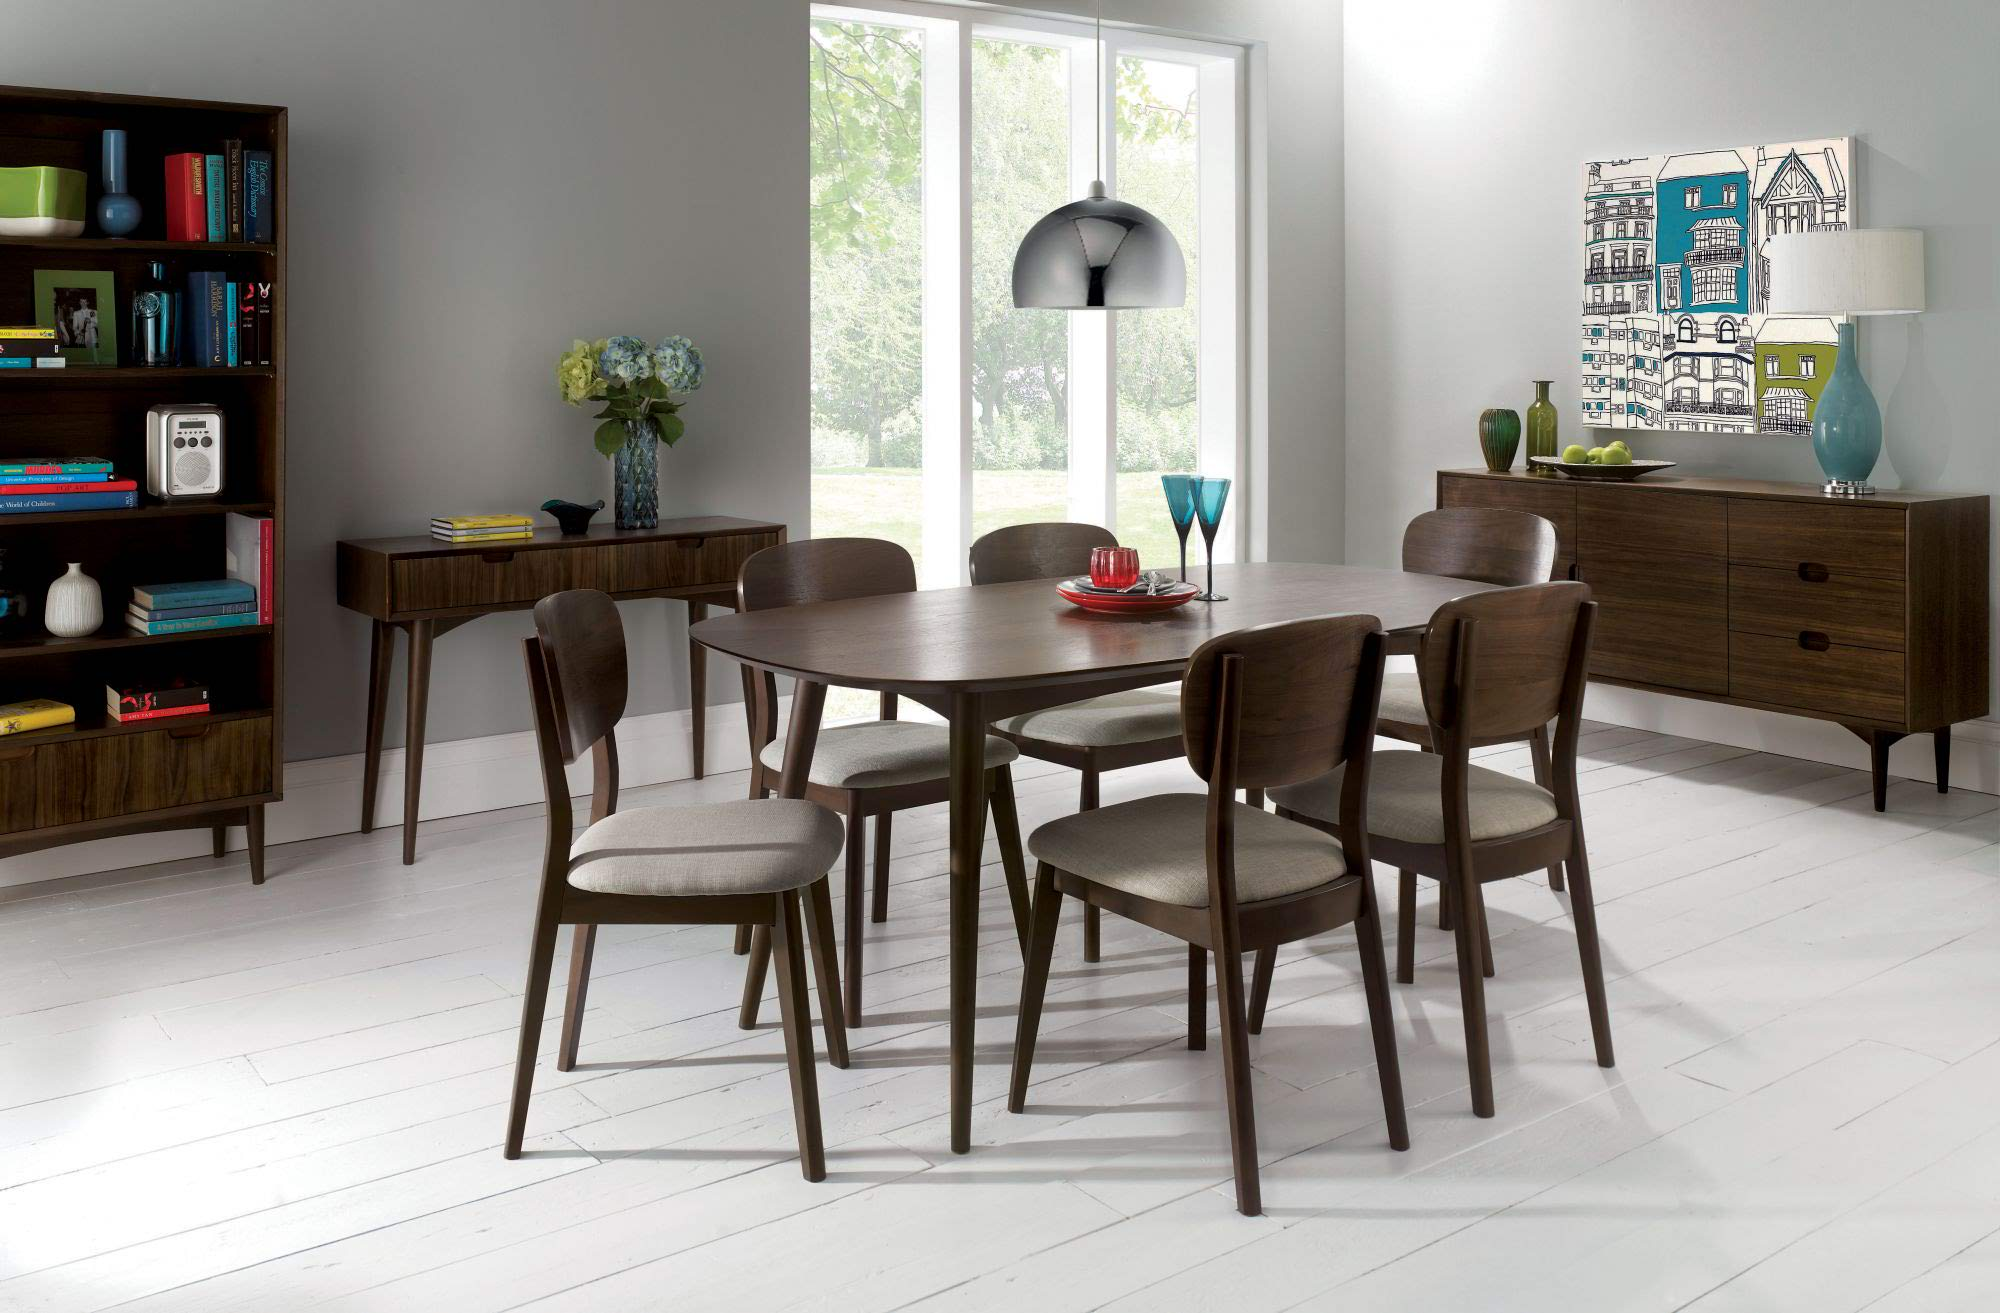 https://www.firstfurniture.co.uk/pub/media/catalog/product/3/1/31_11.jpeg